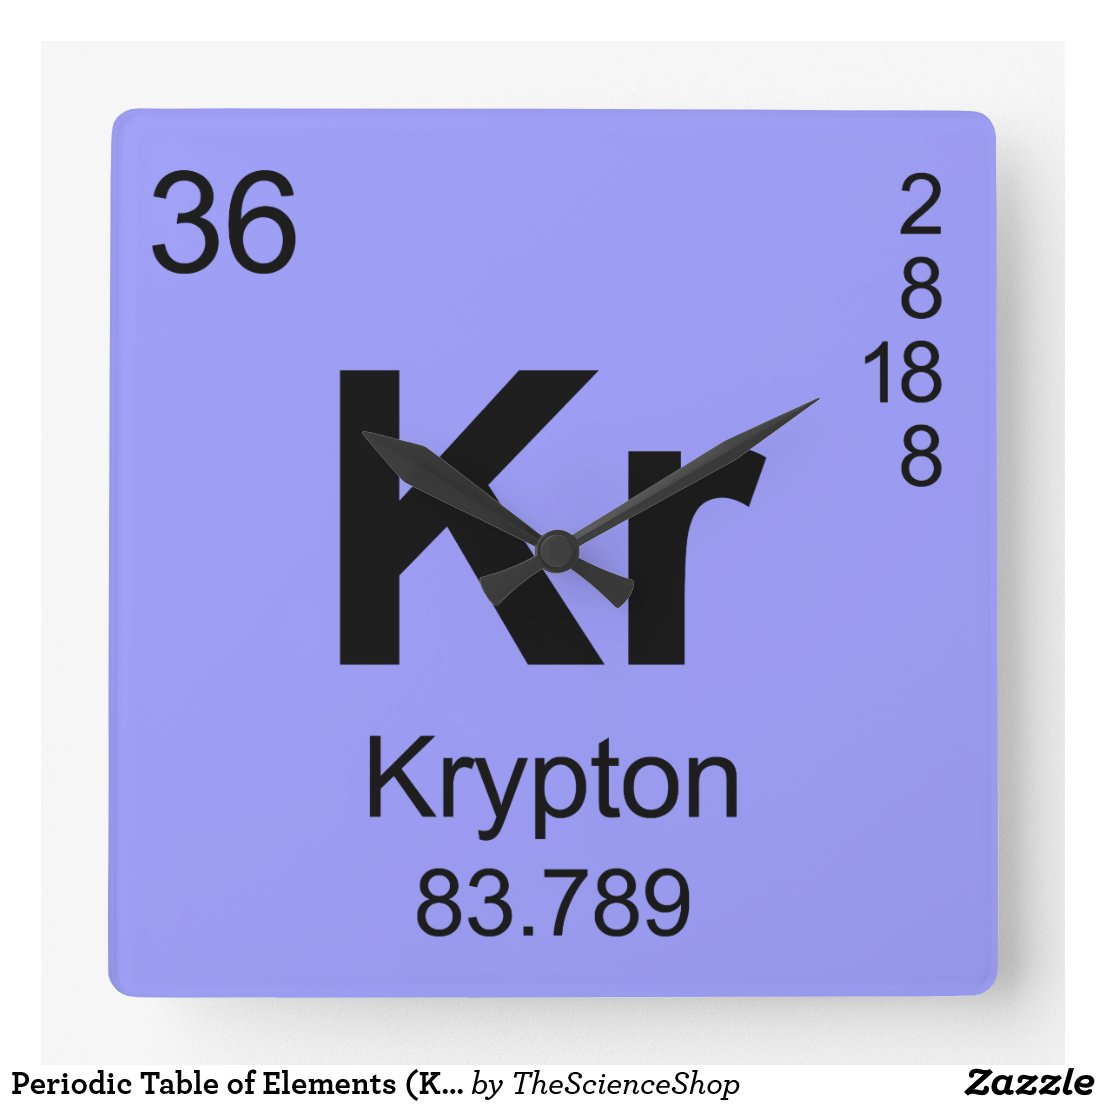 Carbon periodic table square choice image periodic table images periodic table of elements krypton choice image periodic table carbon periodic table square image collections periodic gamestrikefo Images